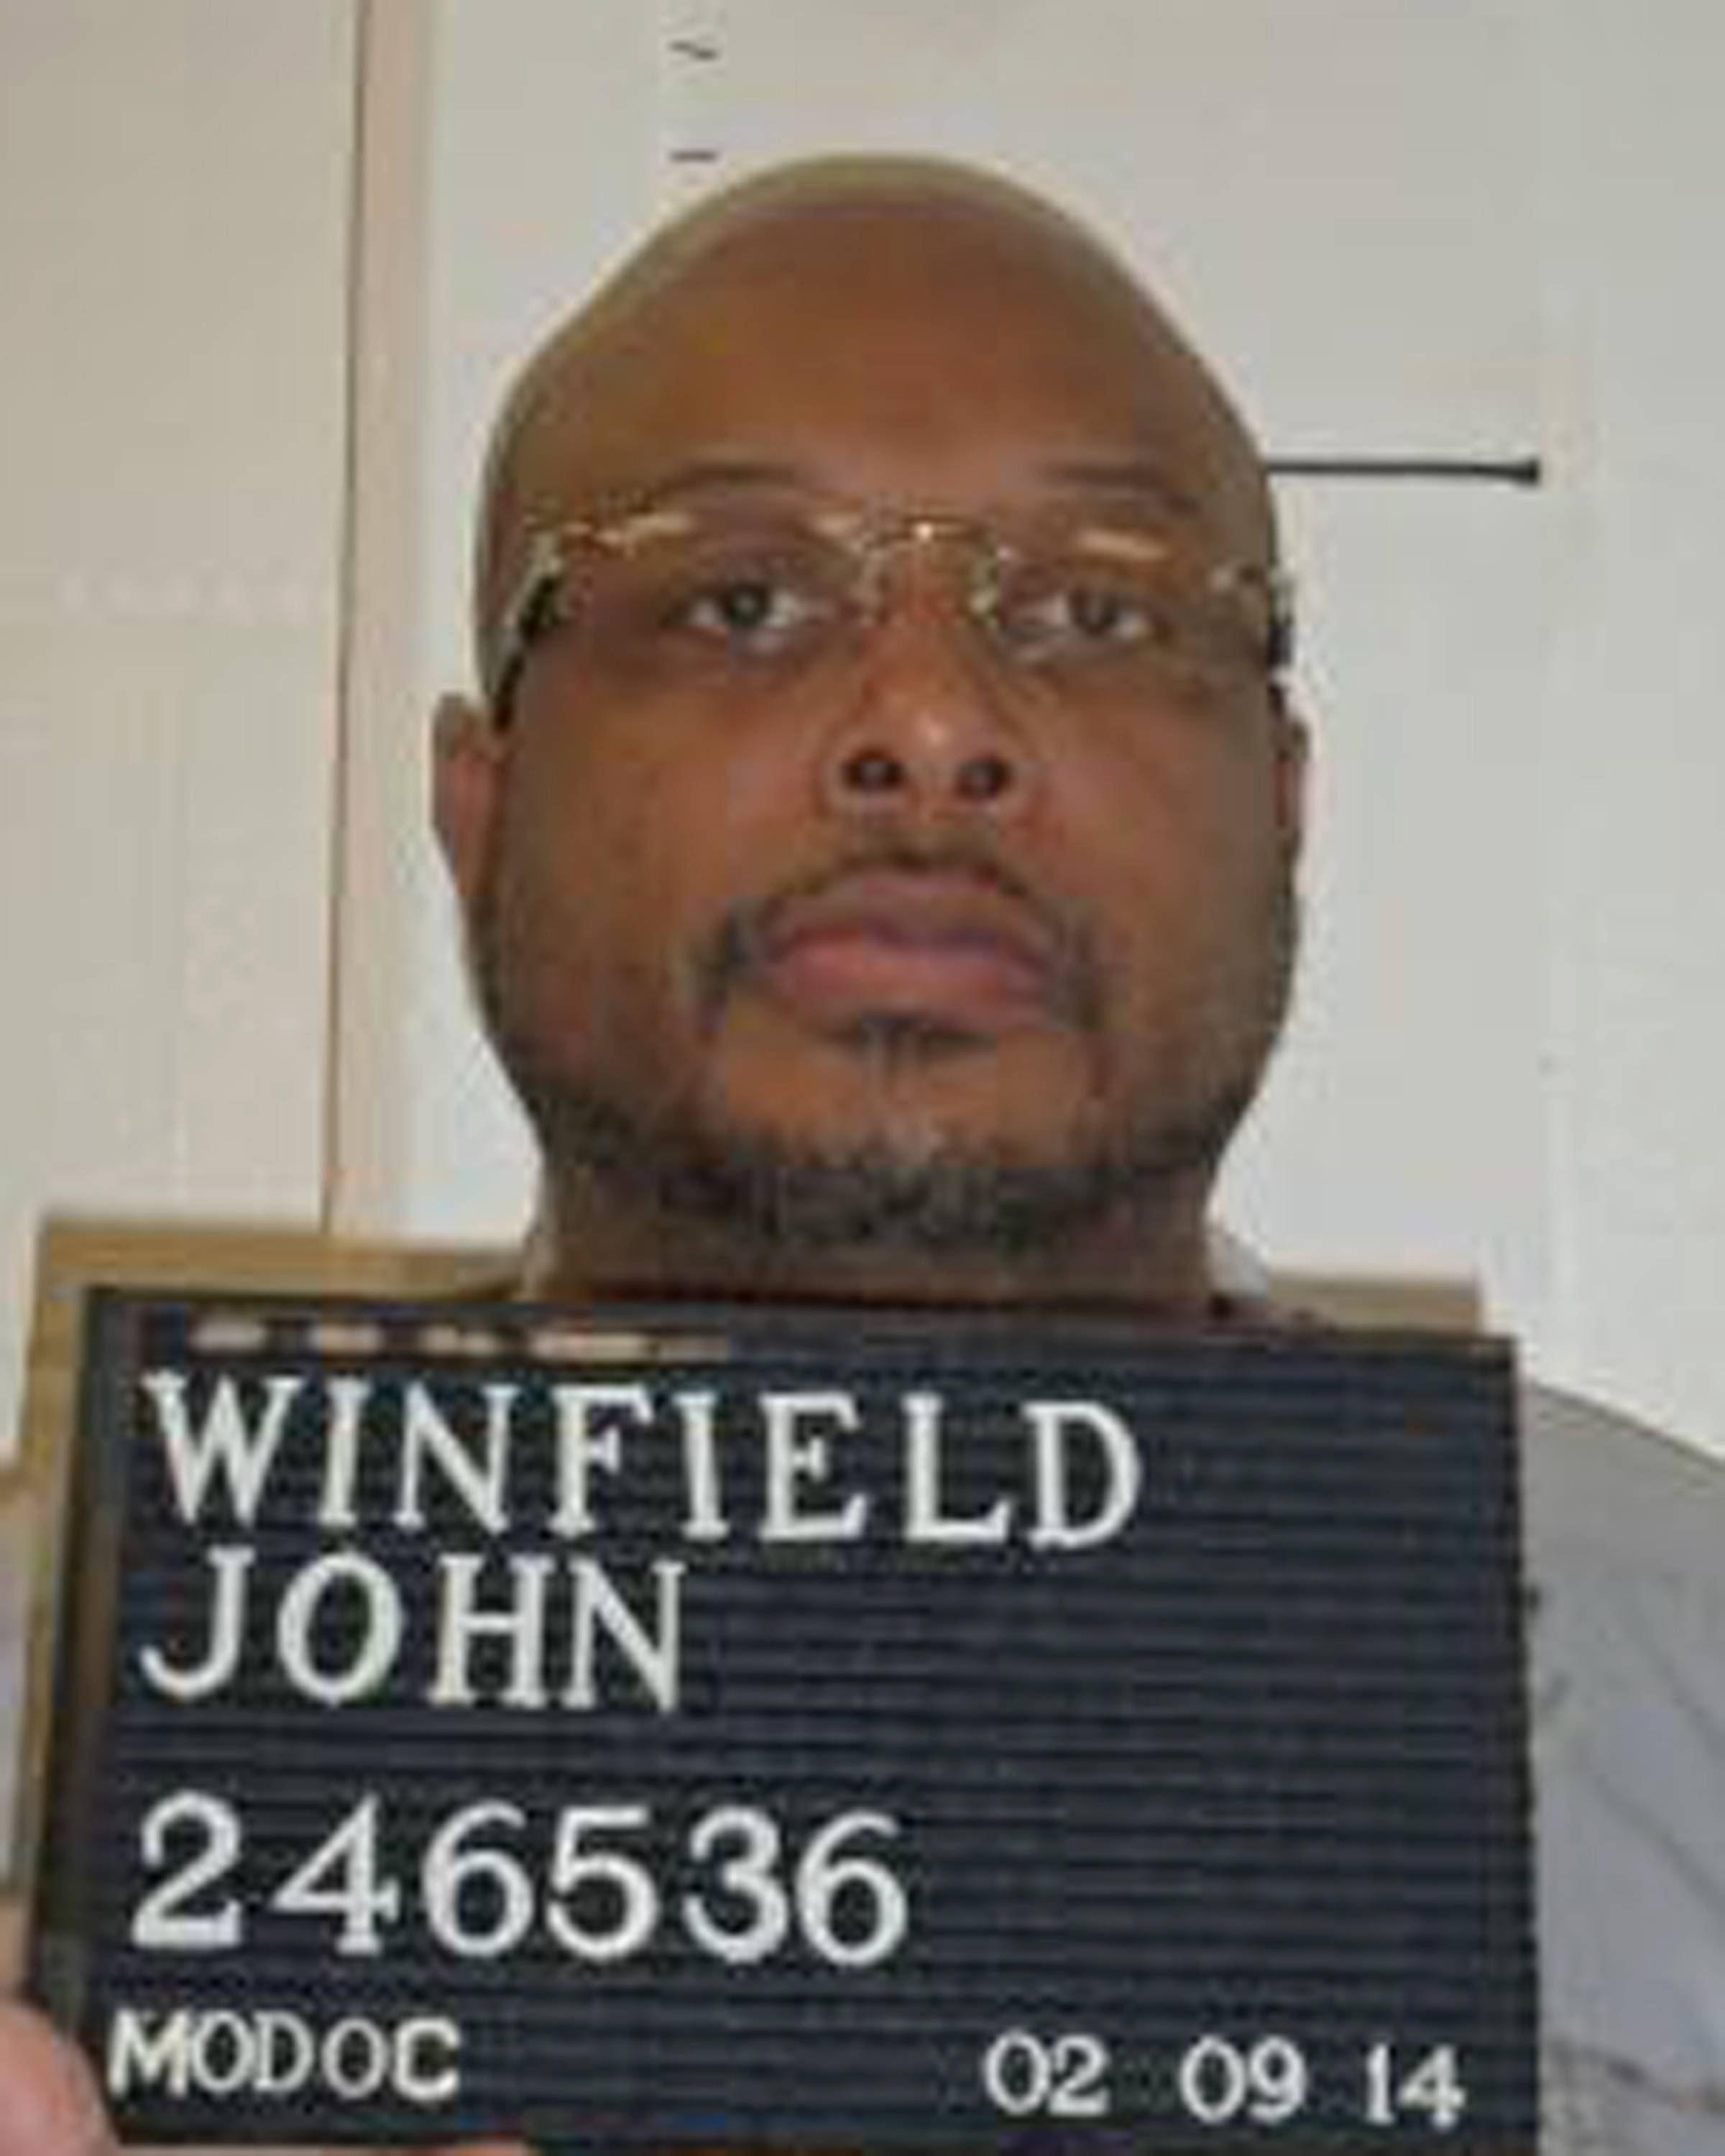 John E. Winfield was the second inmate put to death in the United States since a botched execution in Oklahoma in April.